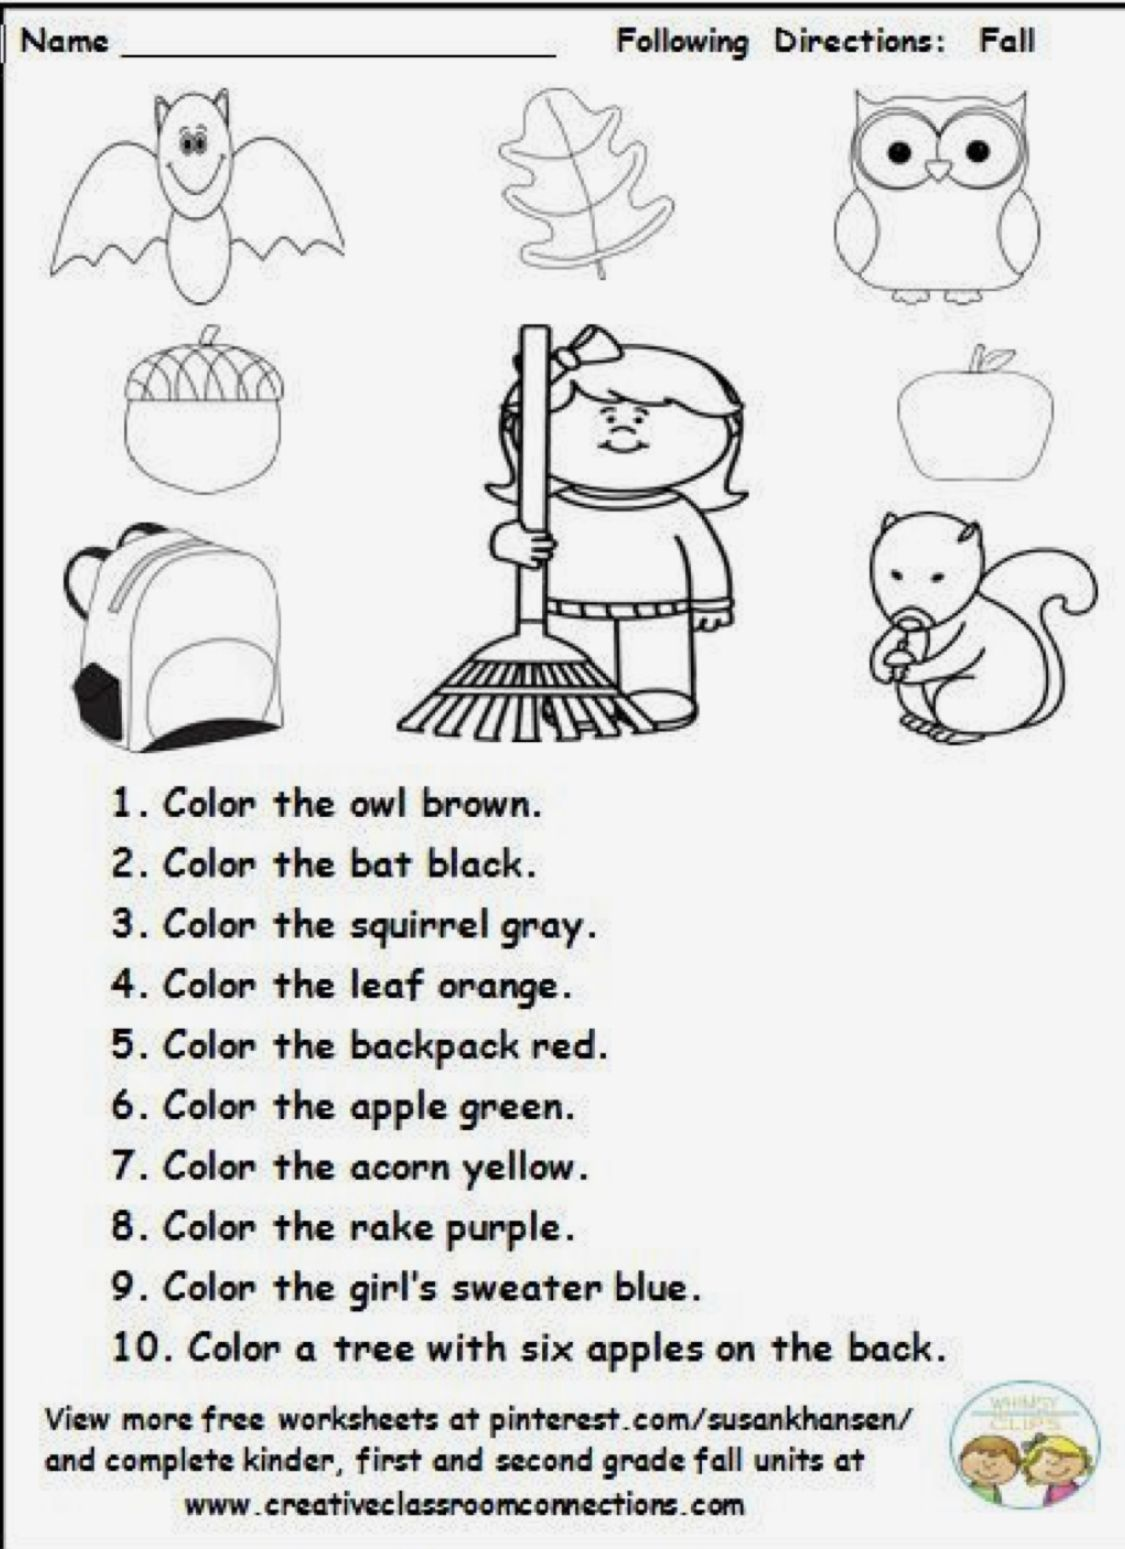 Fall coloring   Following directions activities [ 1549 x 1125 Pixel ]